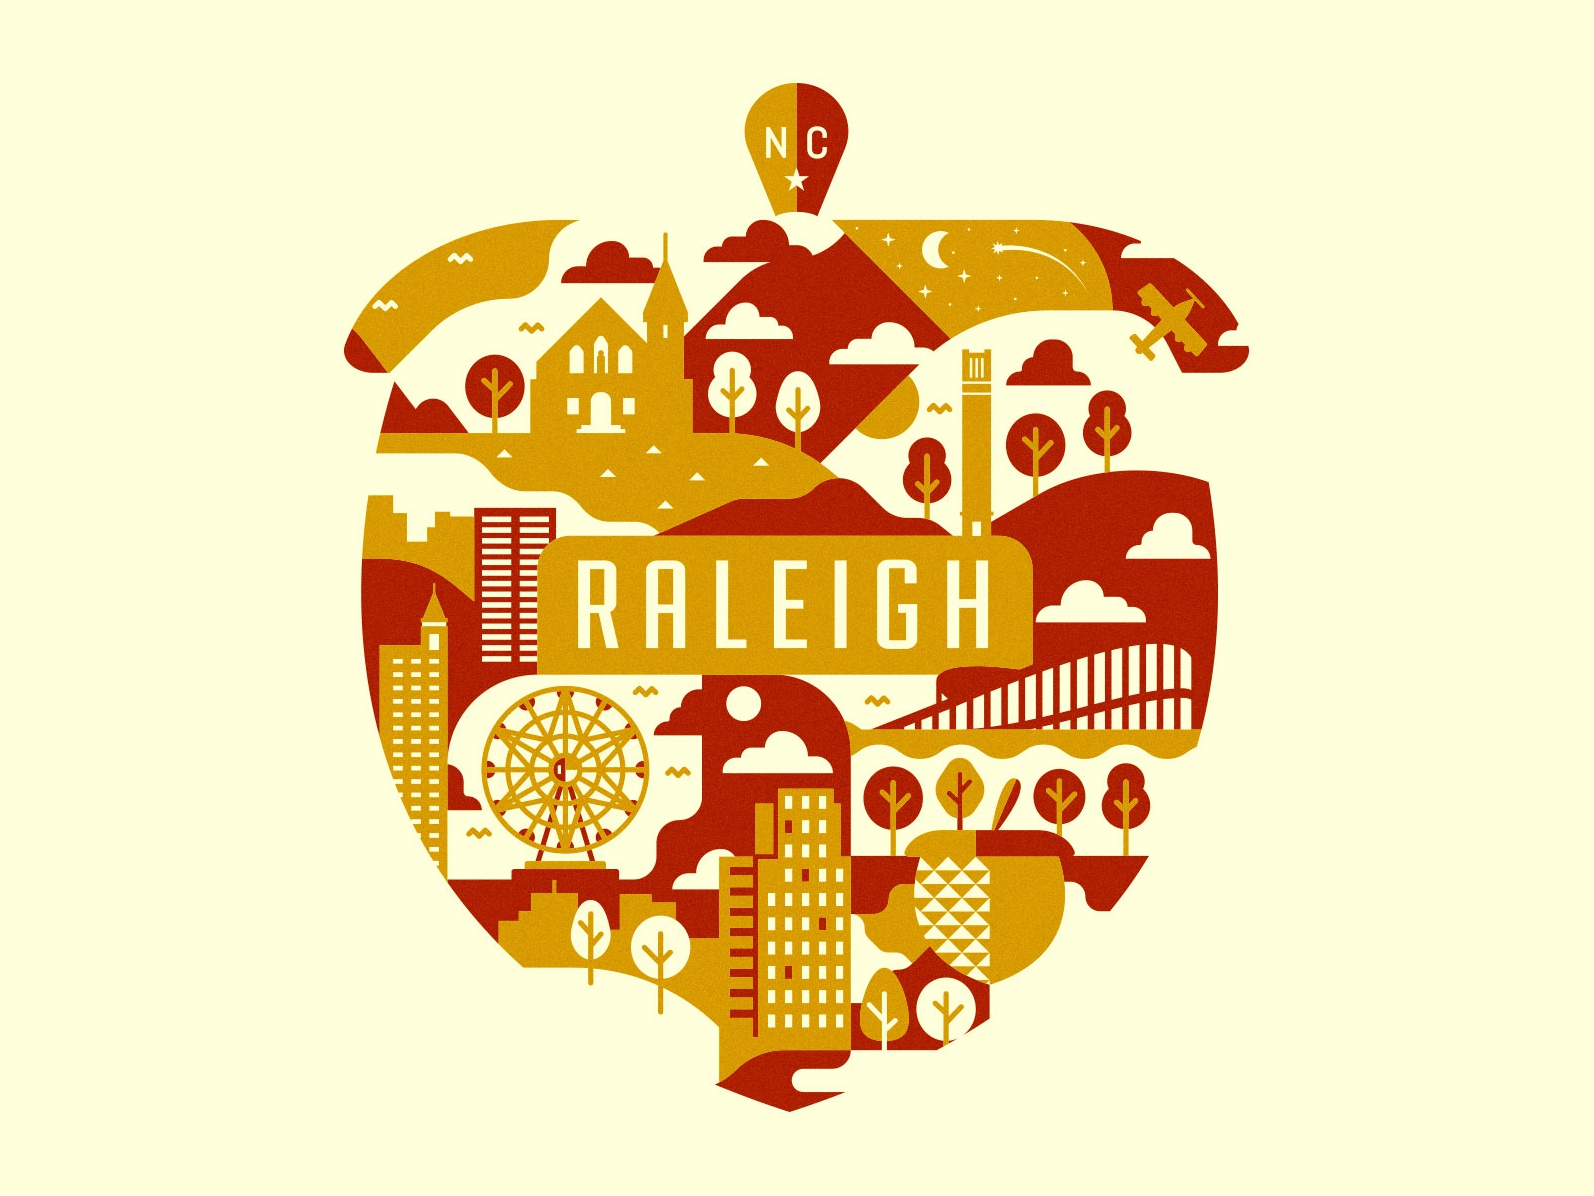 Raleigh raleigh north carolina illustration